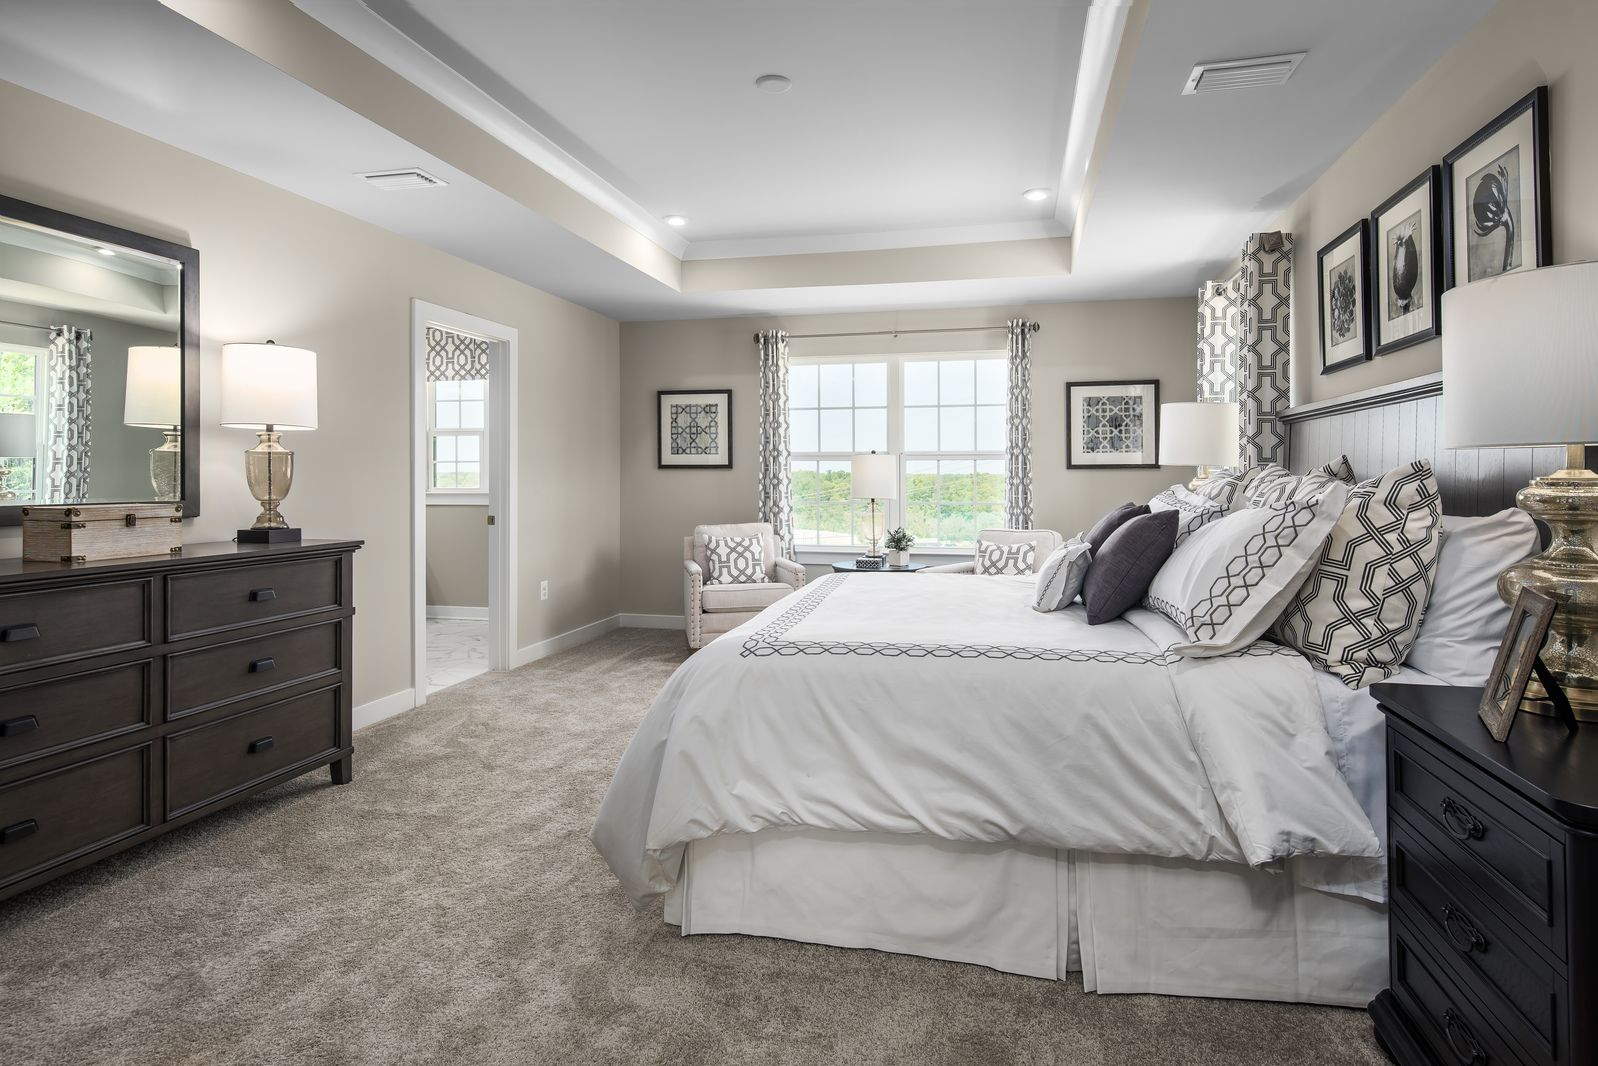 Bedroom featured in the Columbia By Ryan Homes in Washington, MD